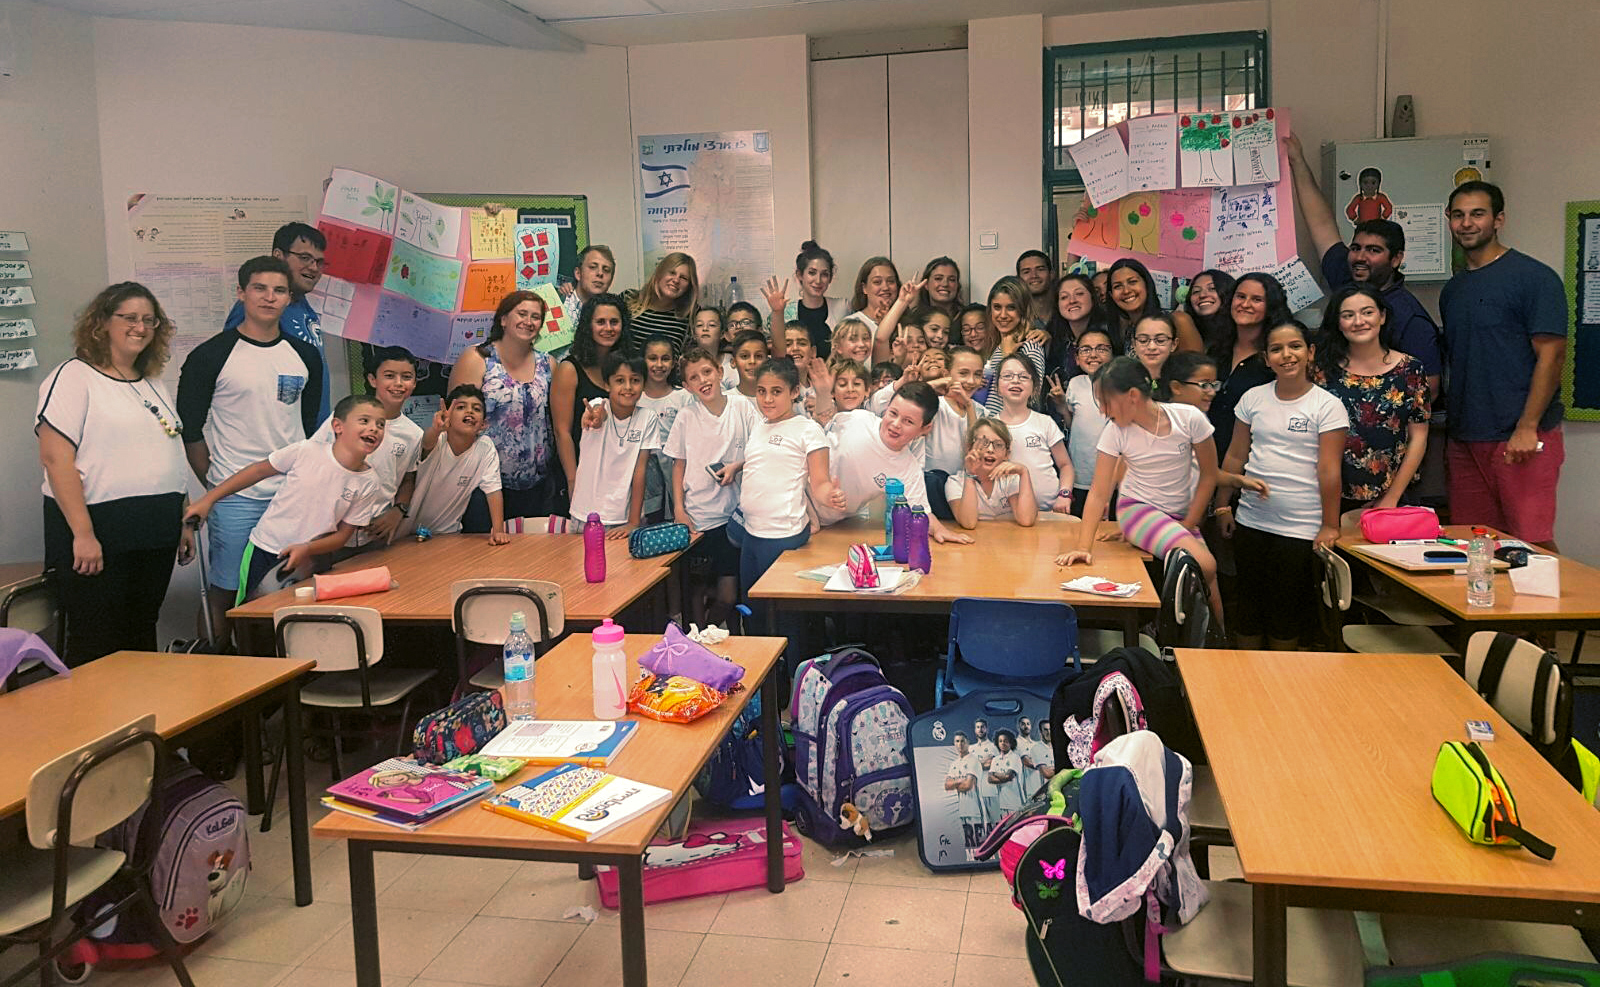 Geena Matuson with fellows and students for Masa Israel Teaching Fellowship's provider Israel Experience in Israel, 2017.